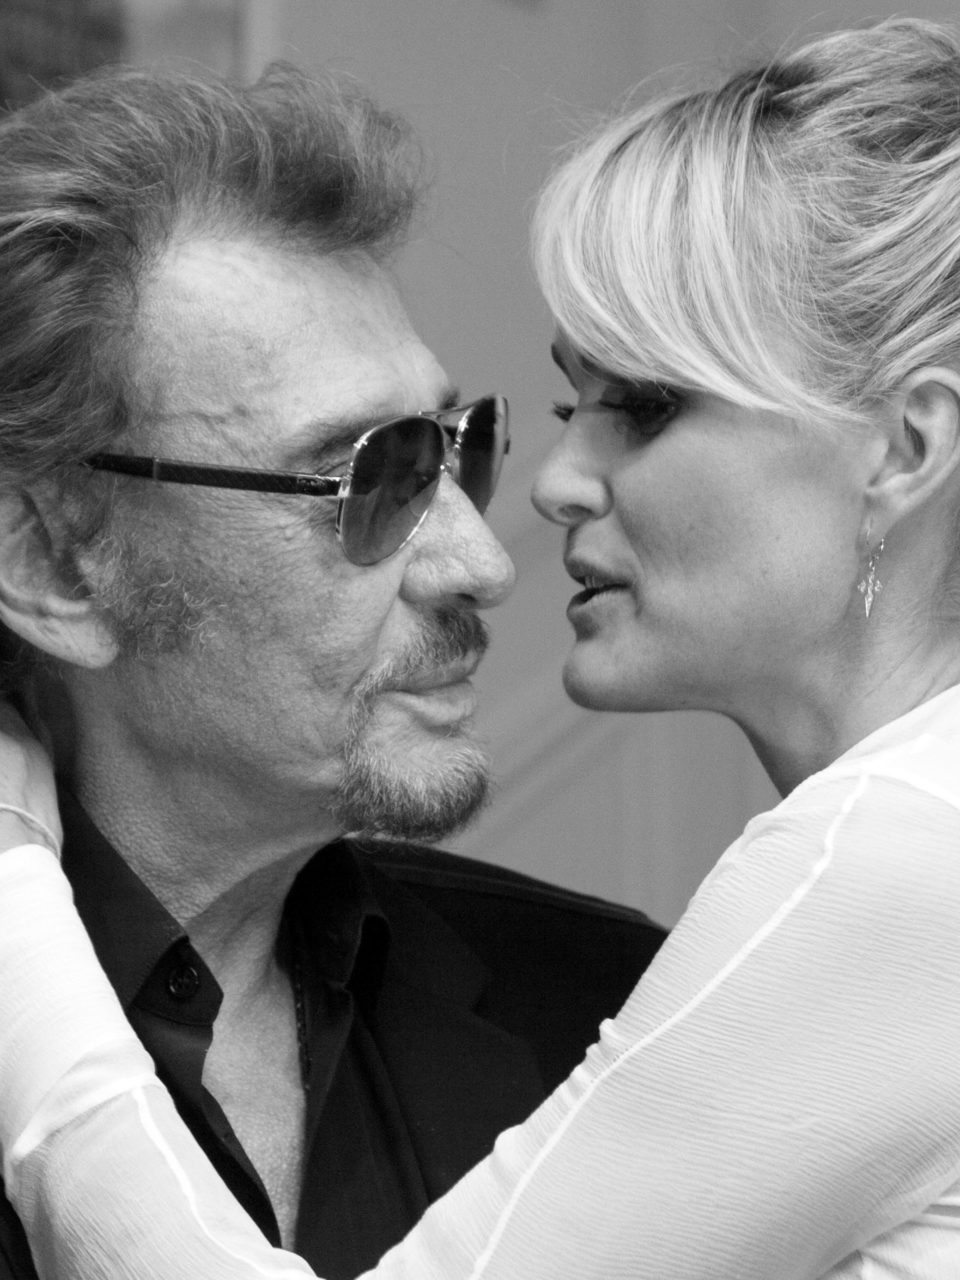 https://www.planetavenue.com/wp-content/uploads/2018/10/mort-de-johnny-hallyday-comment-laeticia-a-appris-que-c-etait-la-fin-pour-son-homme-960x1280.jpeg